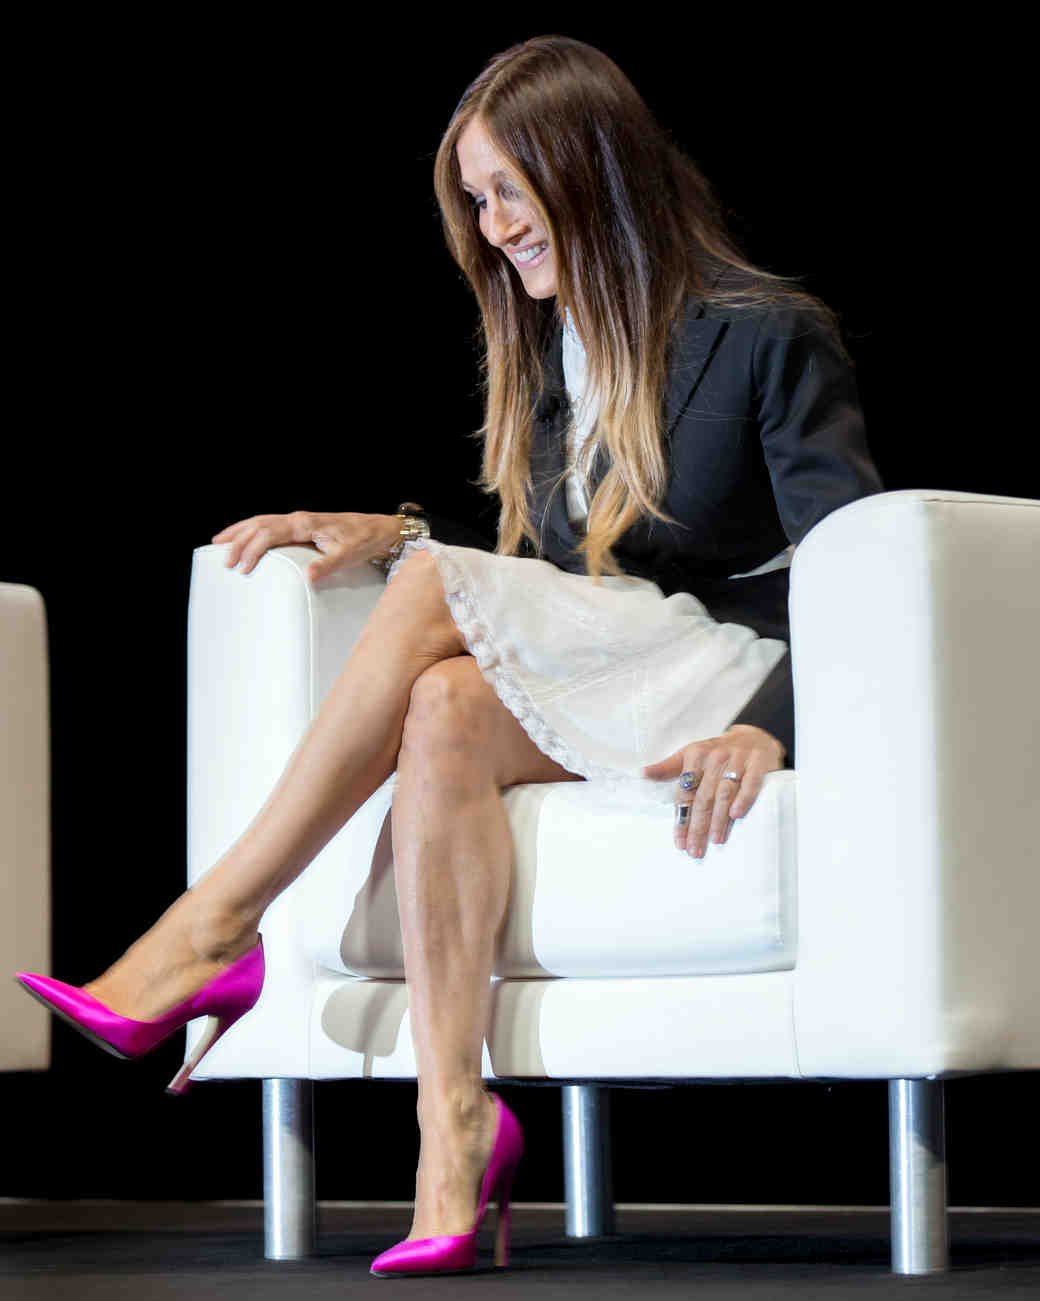 sjp-shoe-roundup-cosmo-seminar-cannes-lions-0515.jpg